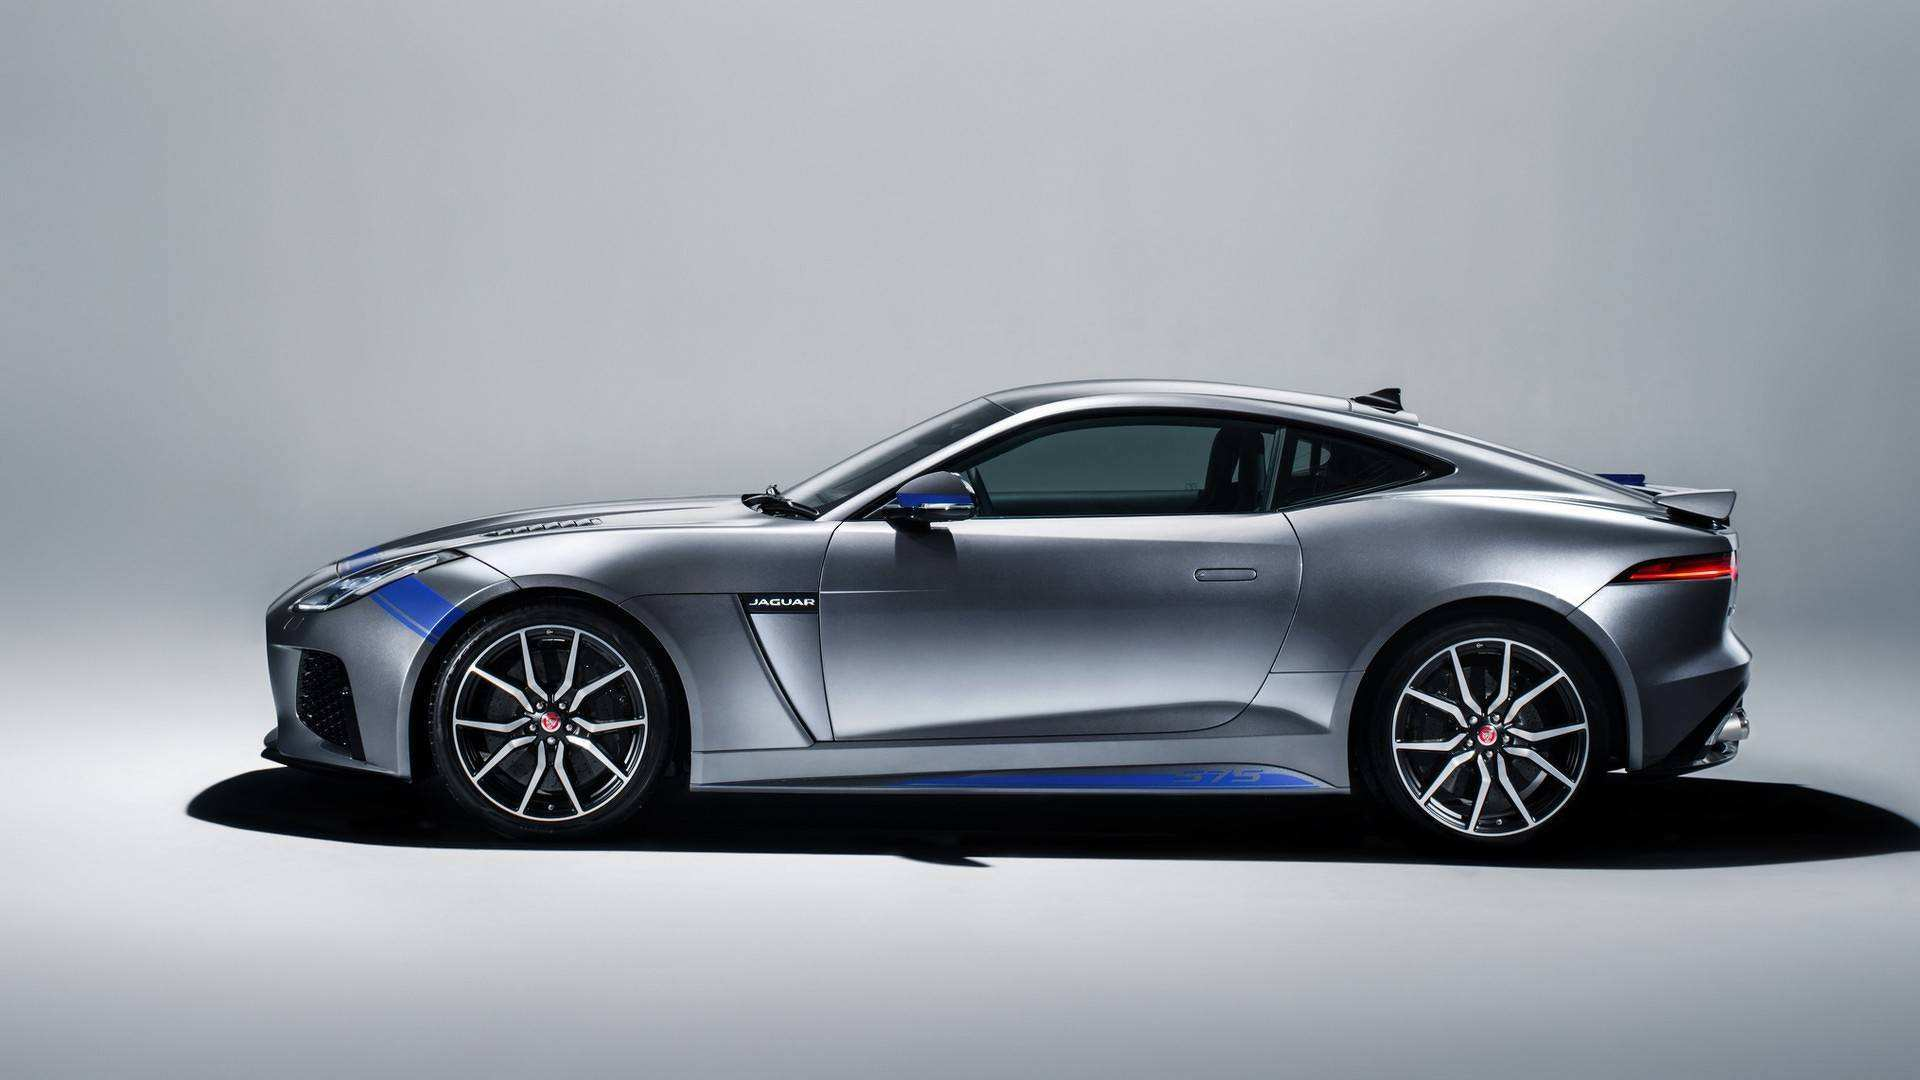 42 New Jaguar F Type 2020 Pricing with Jaguar F Type 2020